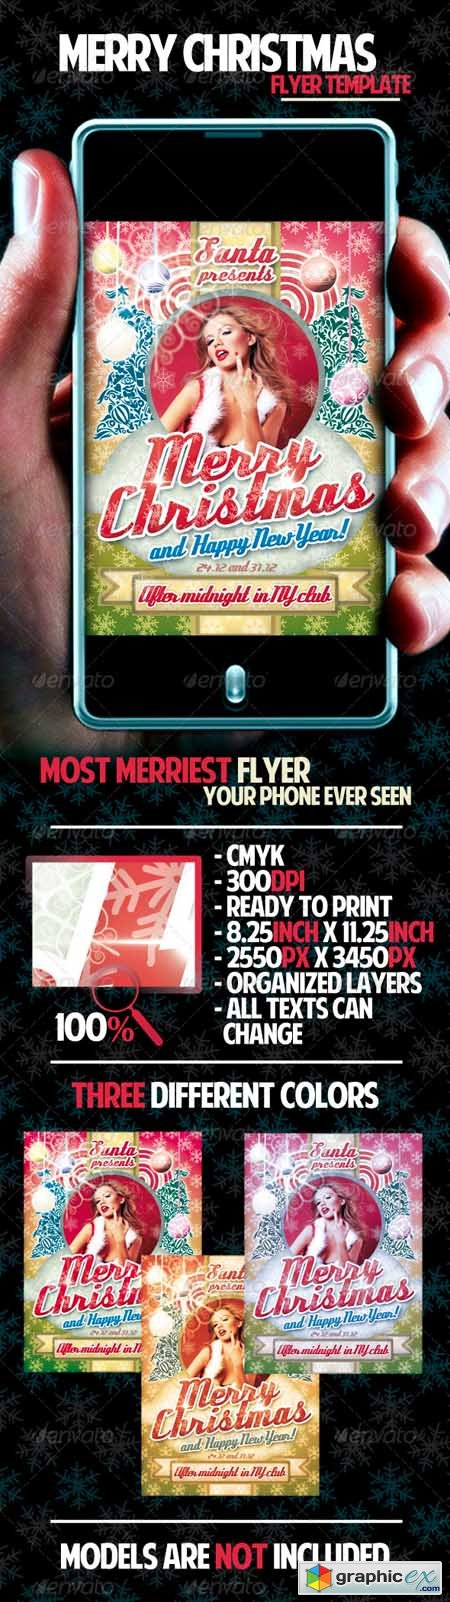 Merry Christmas Flyer Template 837494